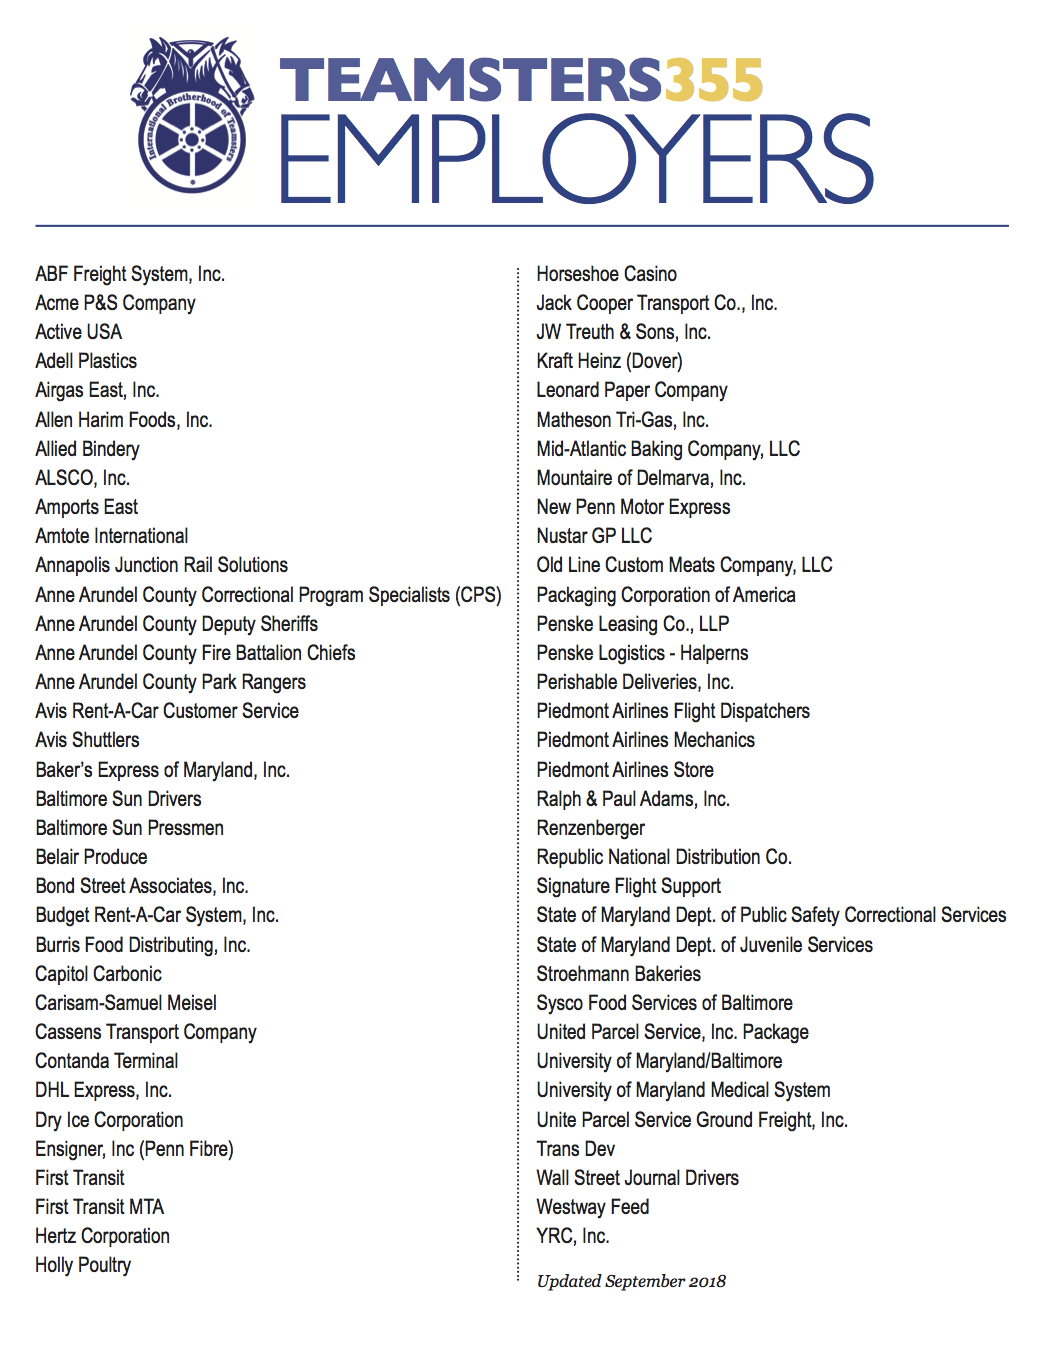 Teamsters Local 355 - Local 355 Employers